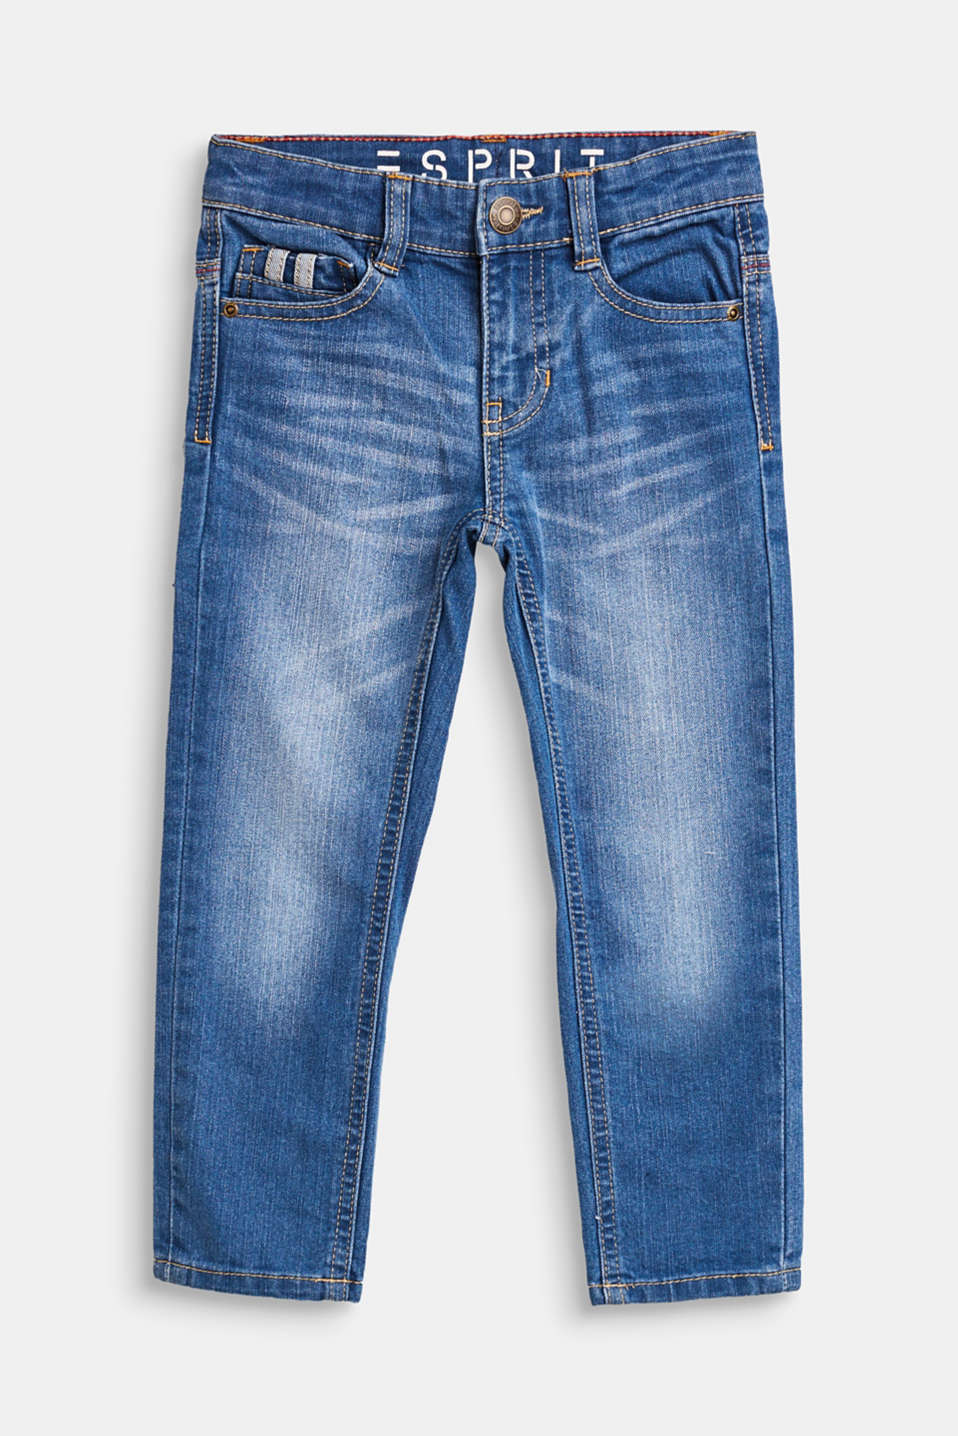 Esprit - Stretch jeans with an elasticated waistband